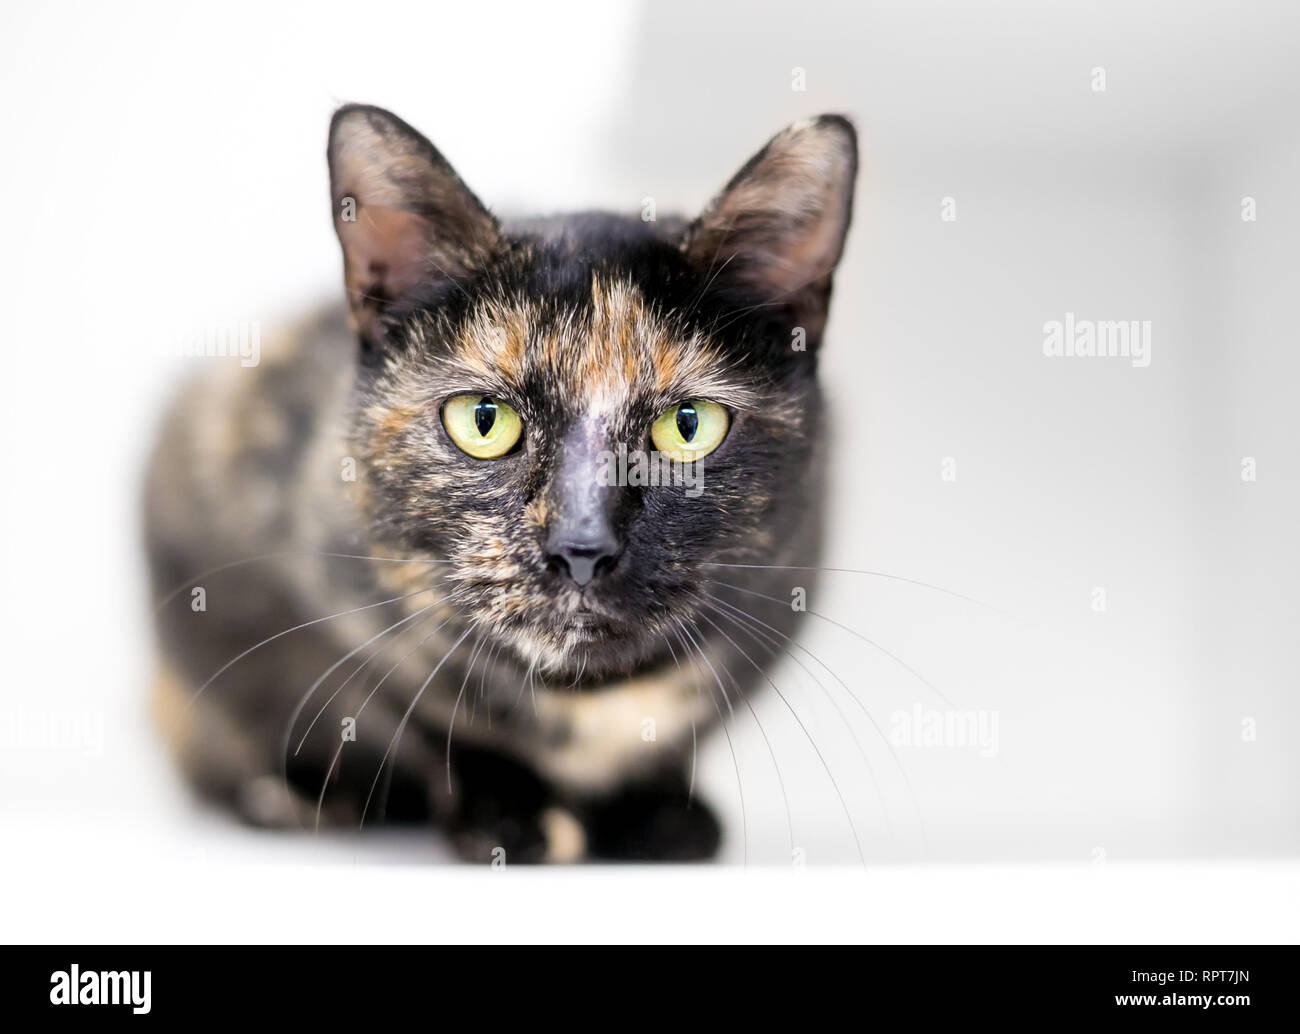 A Tortoiseshell domestic shorthair cat in a crouched position looking directly at the camera - Stock Image